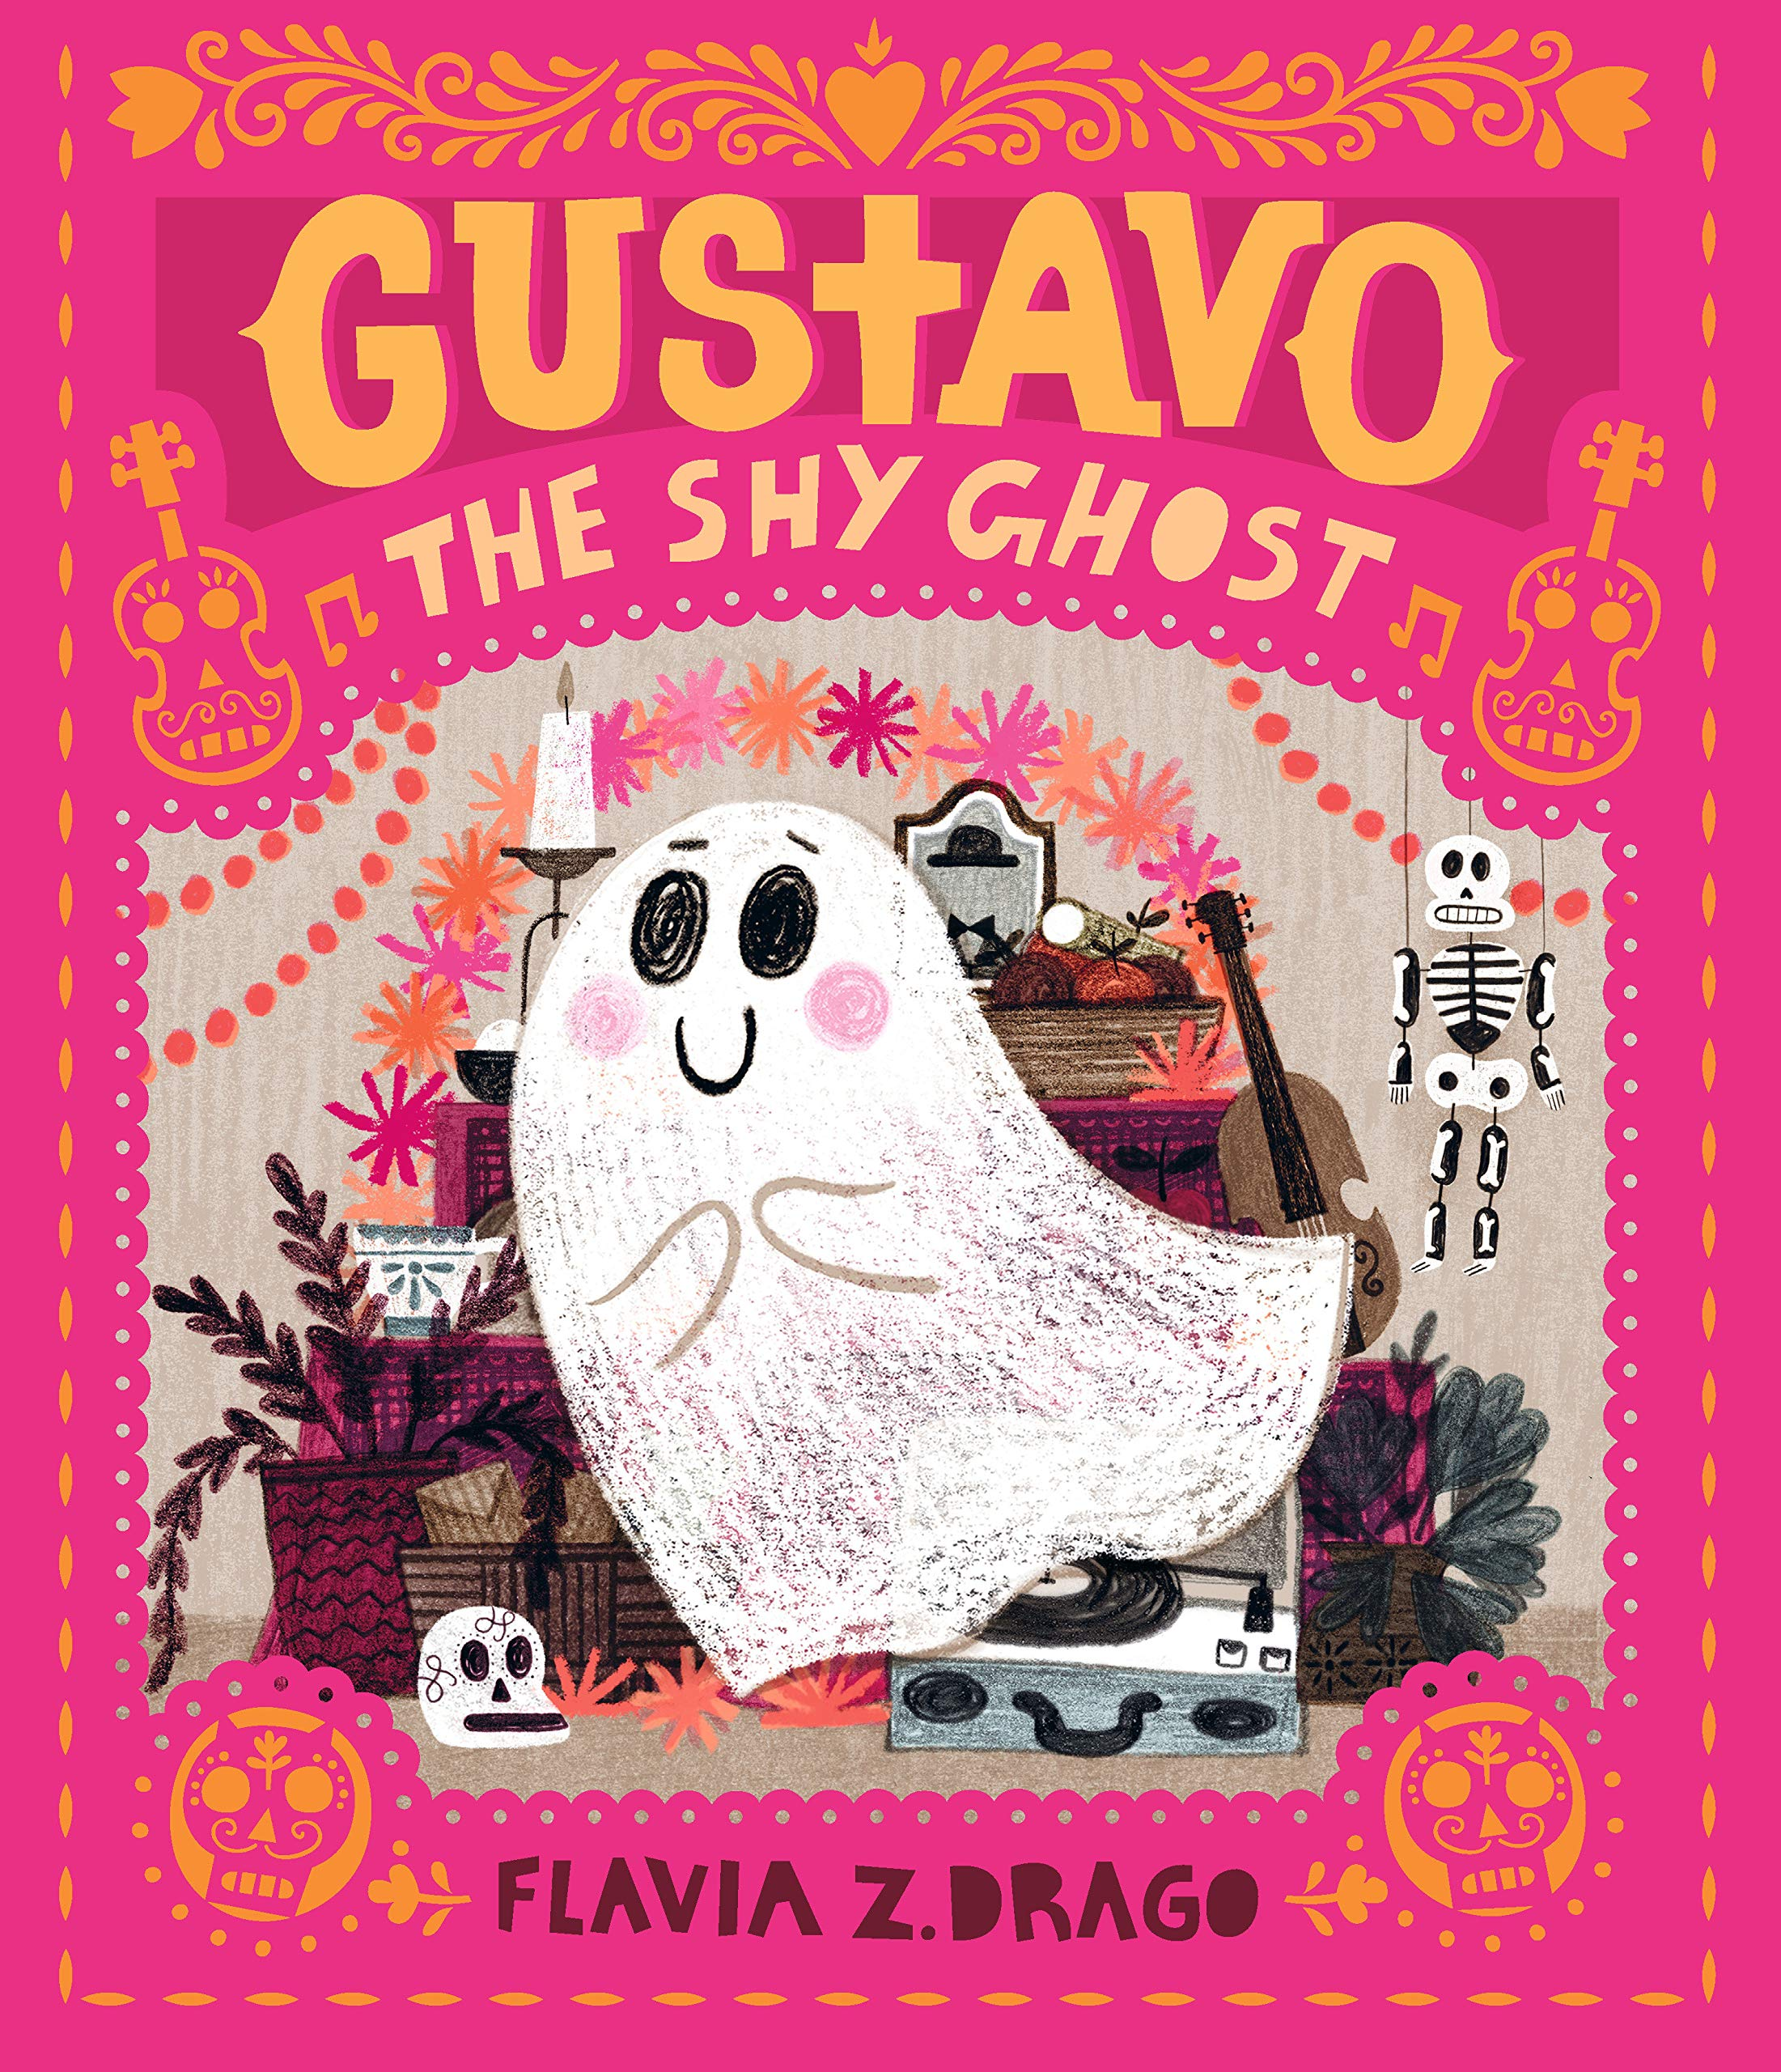 celebrate-picture-books-picture-book-review-gustavo-the-shy-ghost-cover